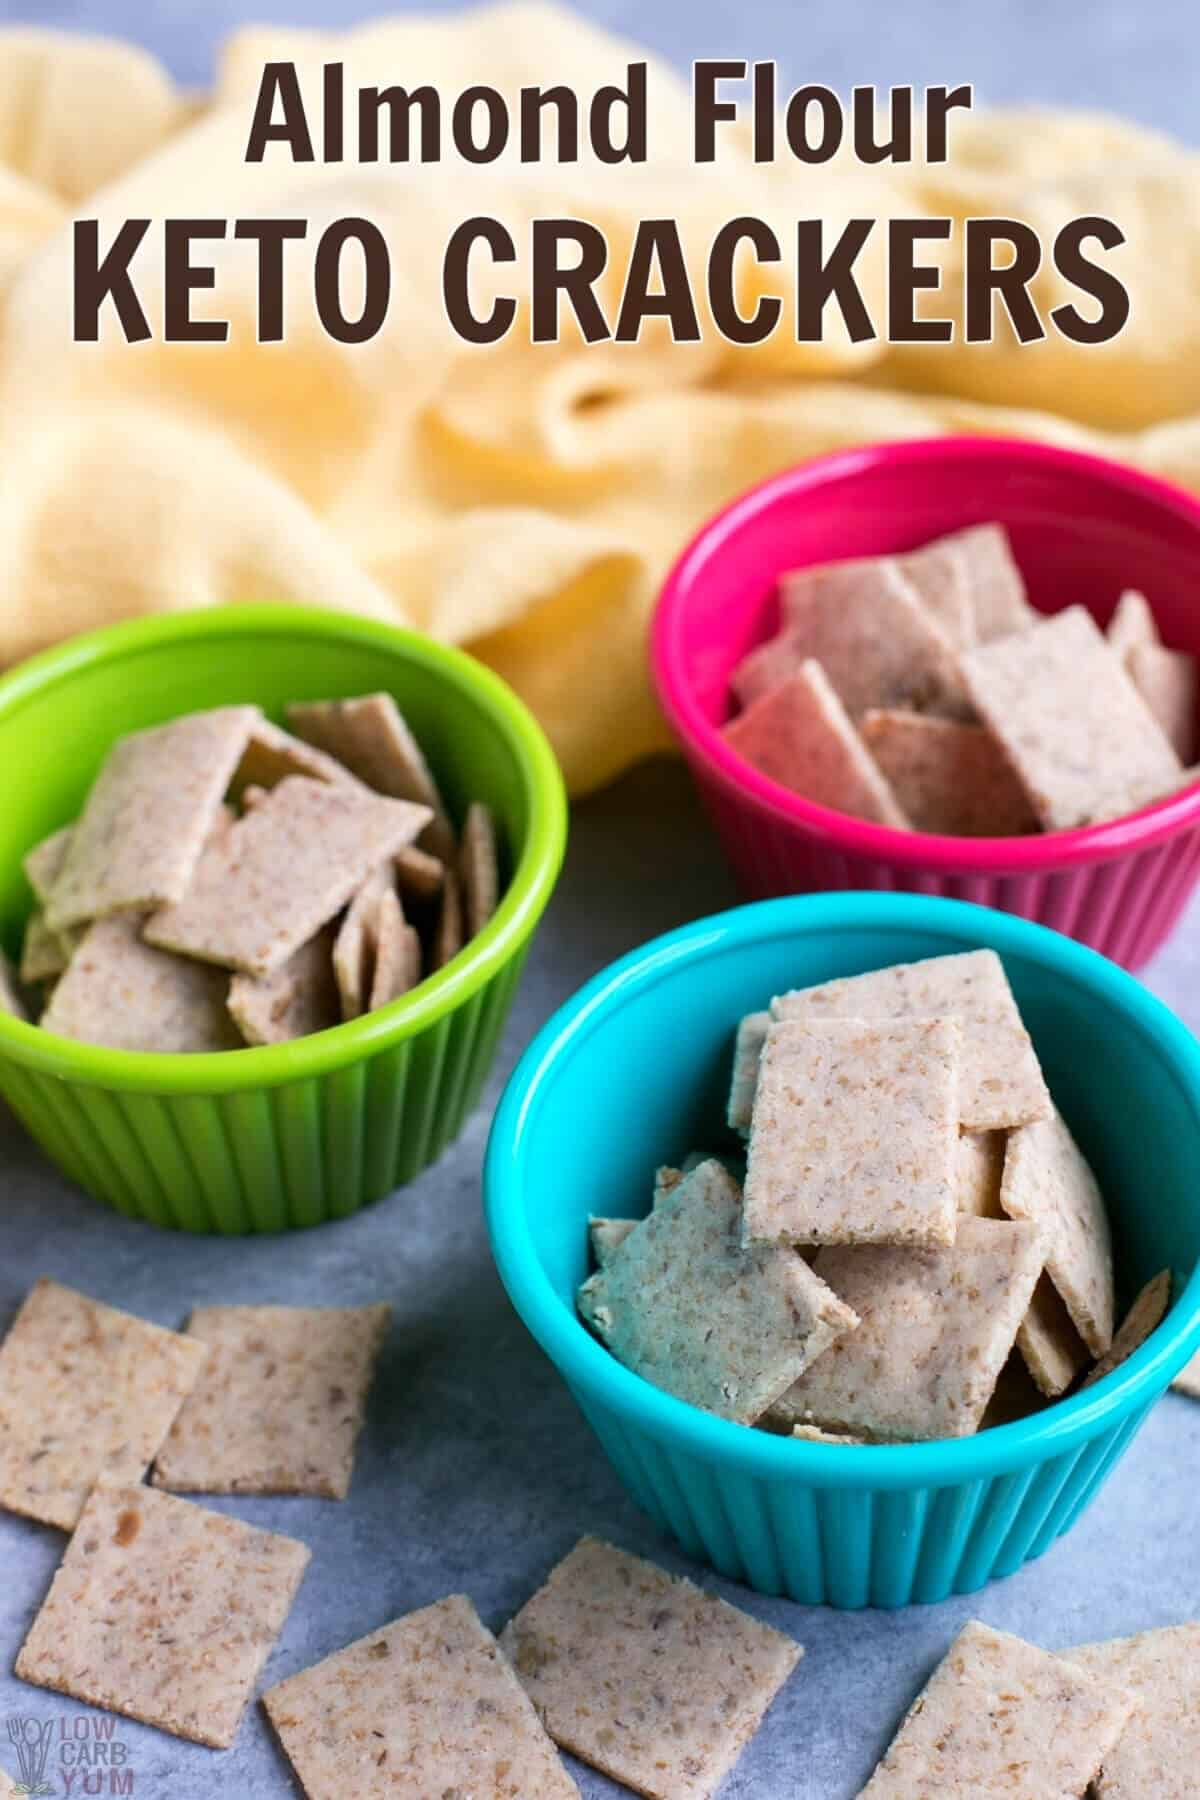 almond flour keto crackers in cups